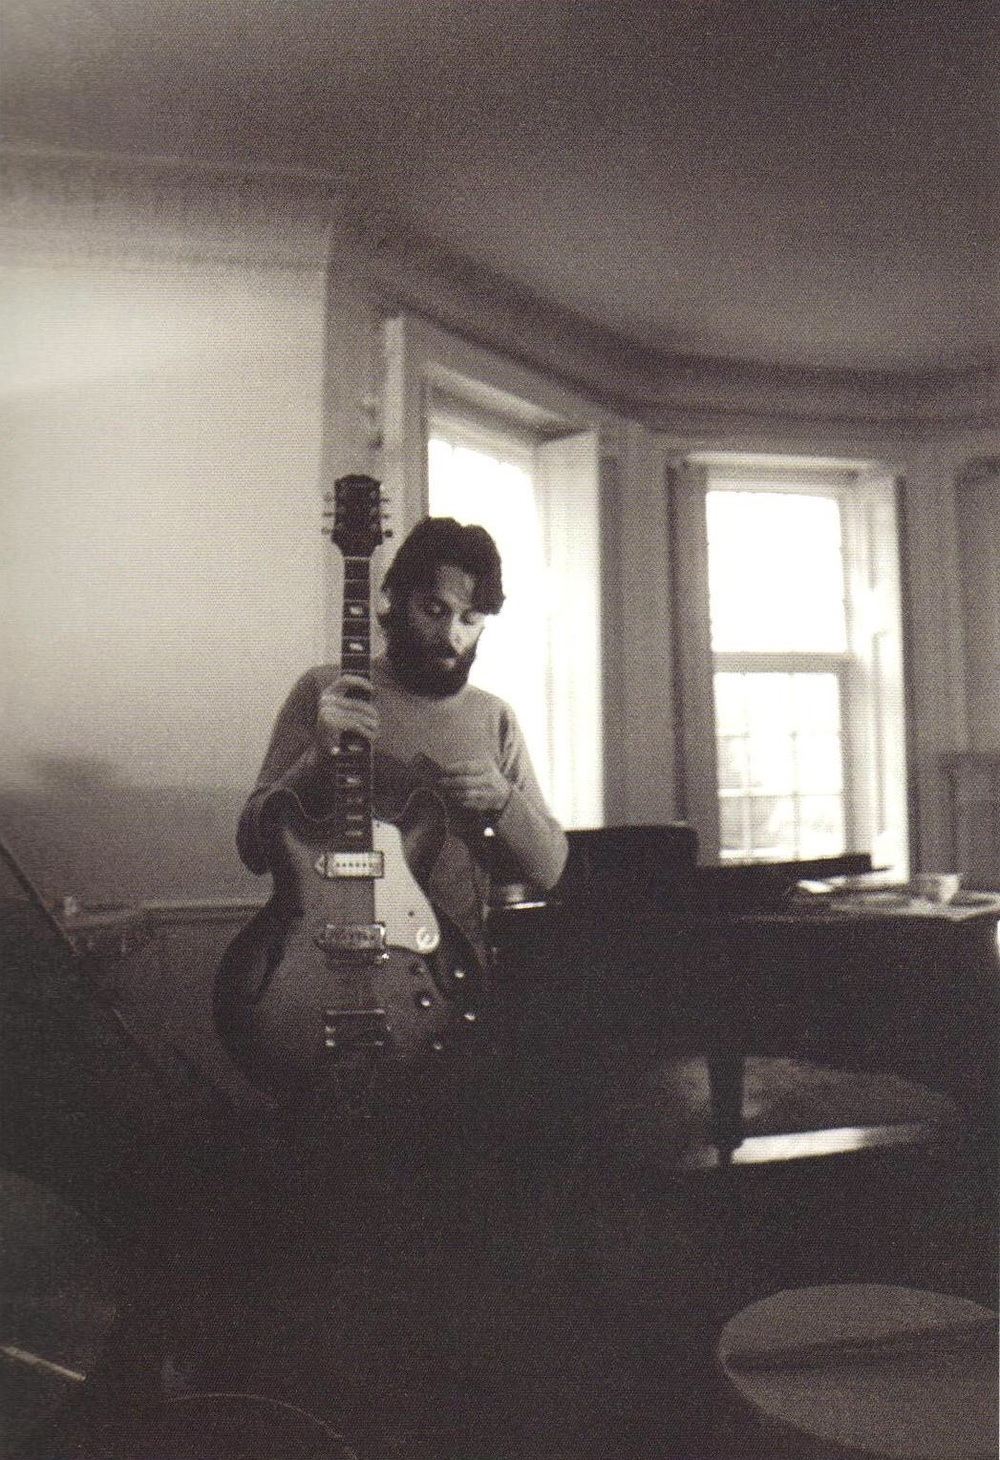 Paul McCartney recording his first solo album, 1969.